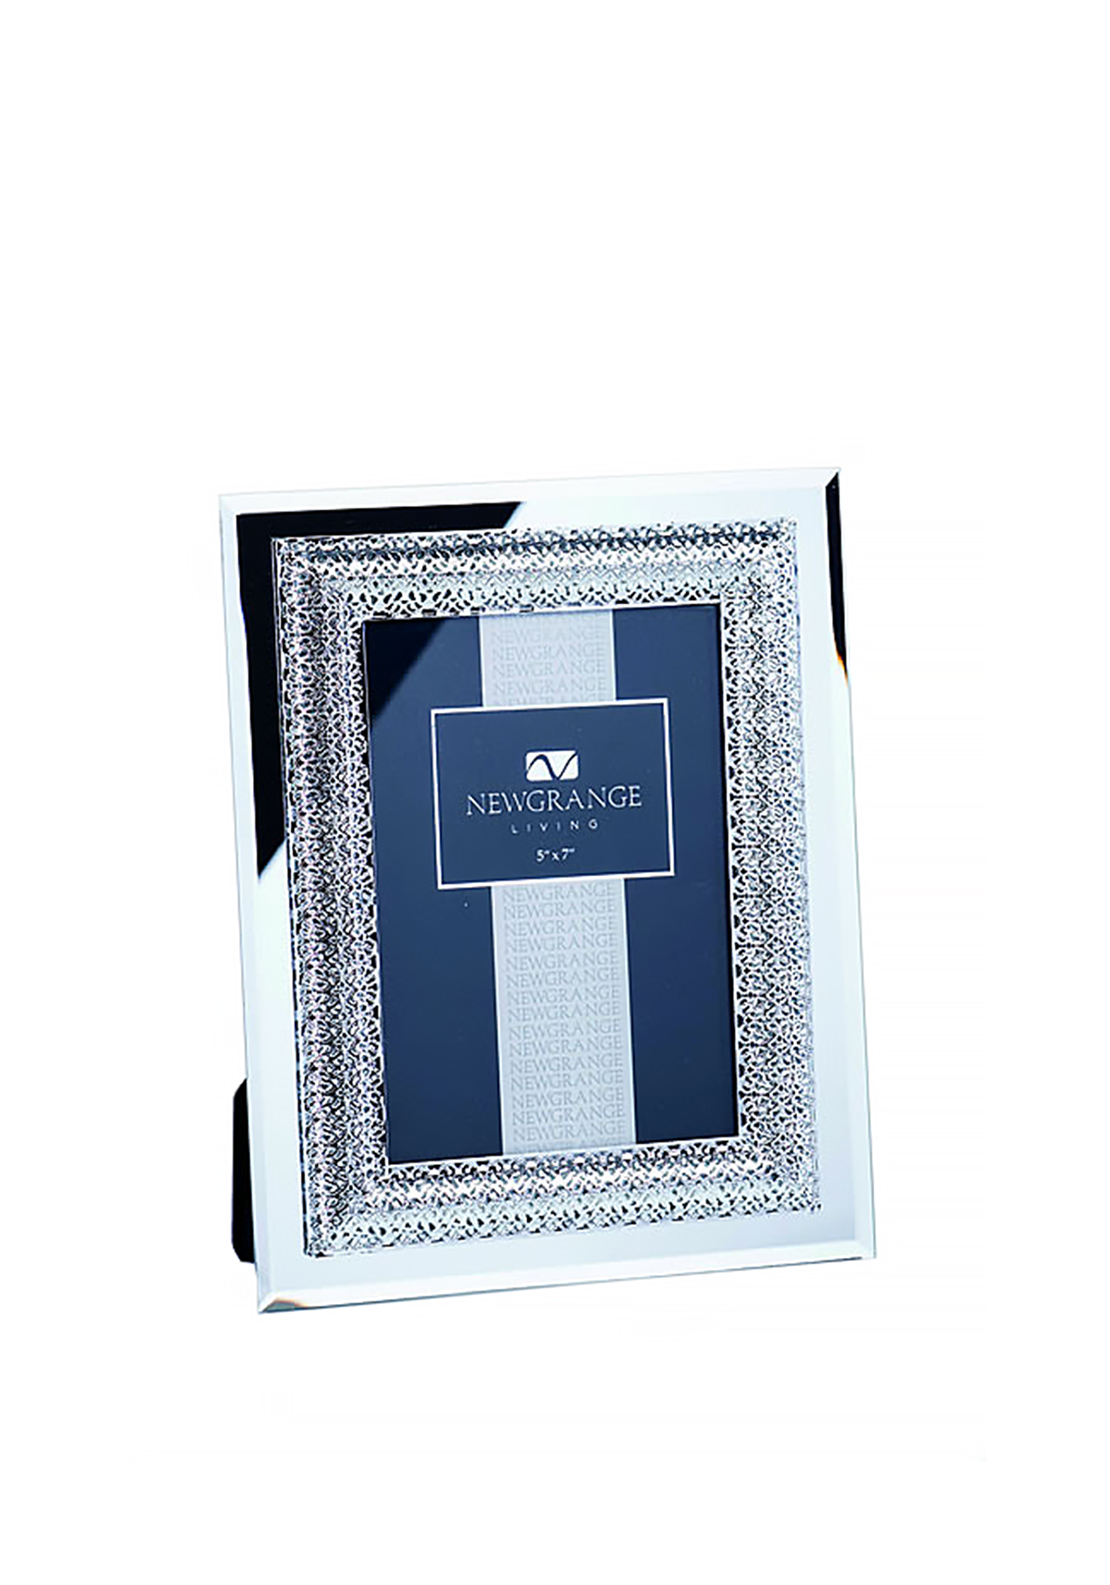 Newgrange Living Lattice Photo Frame 5x7, Silver